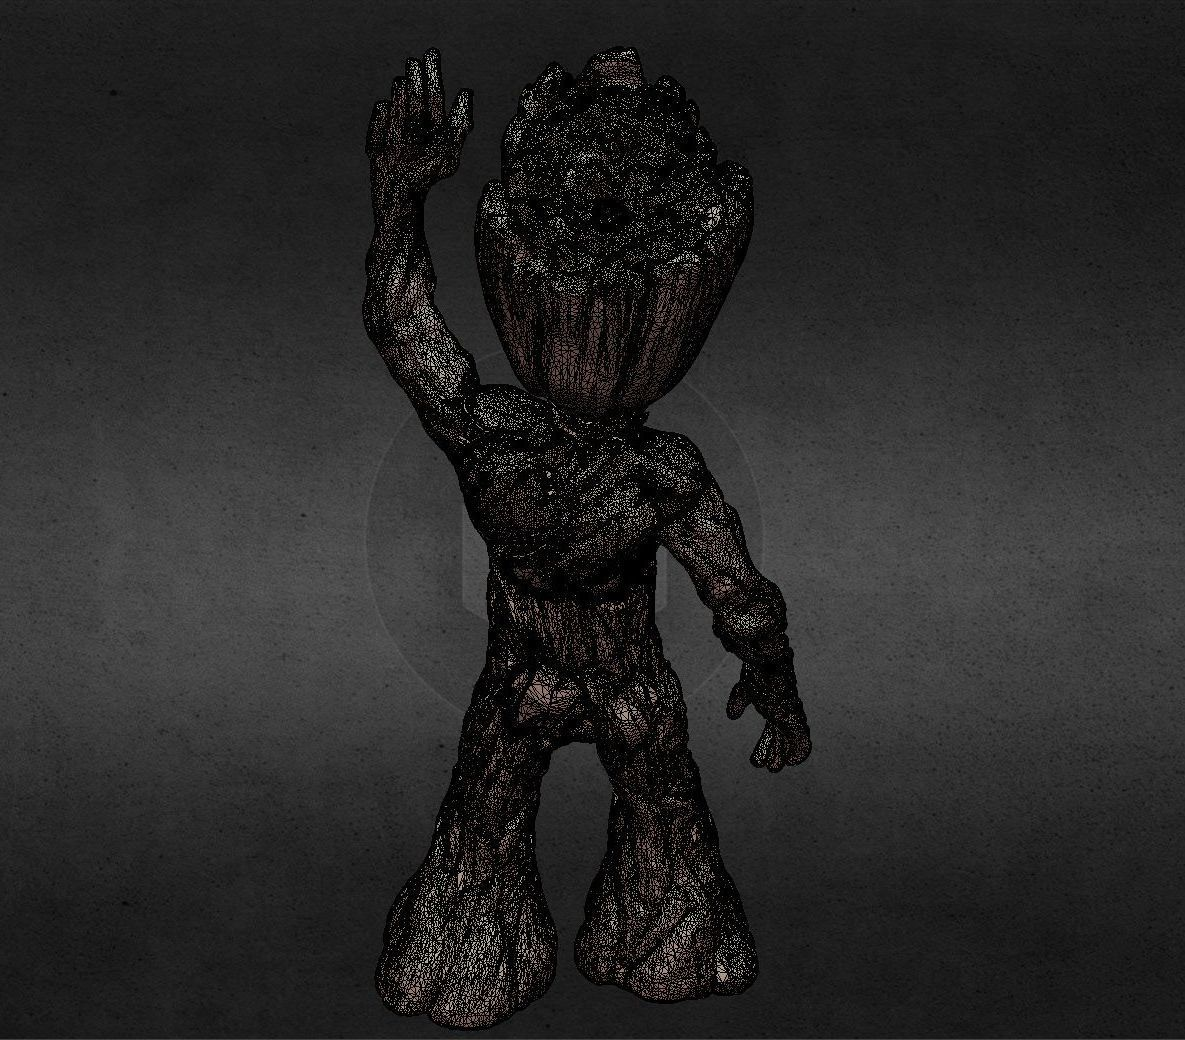 capture_06222017_113420.jpg Download OBJ file LIL BABY GROOT • 3D print template, Masterclip